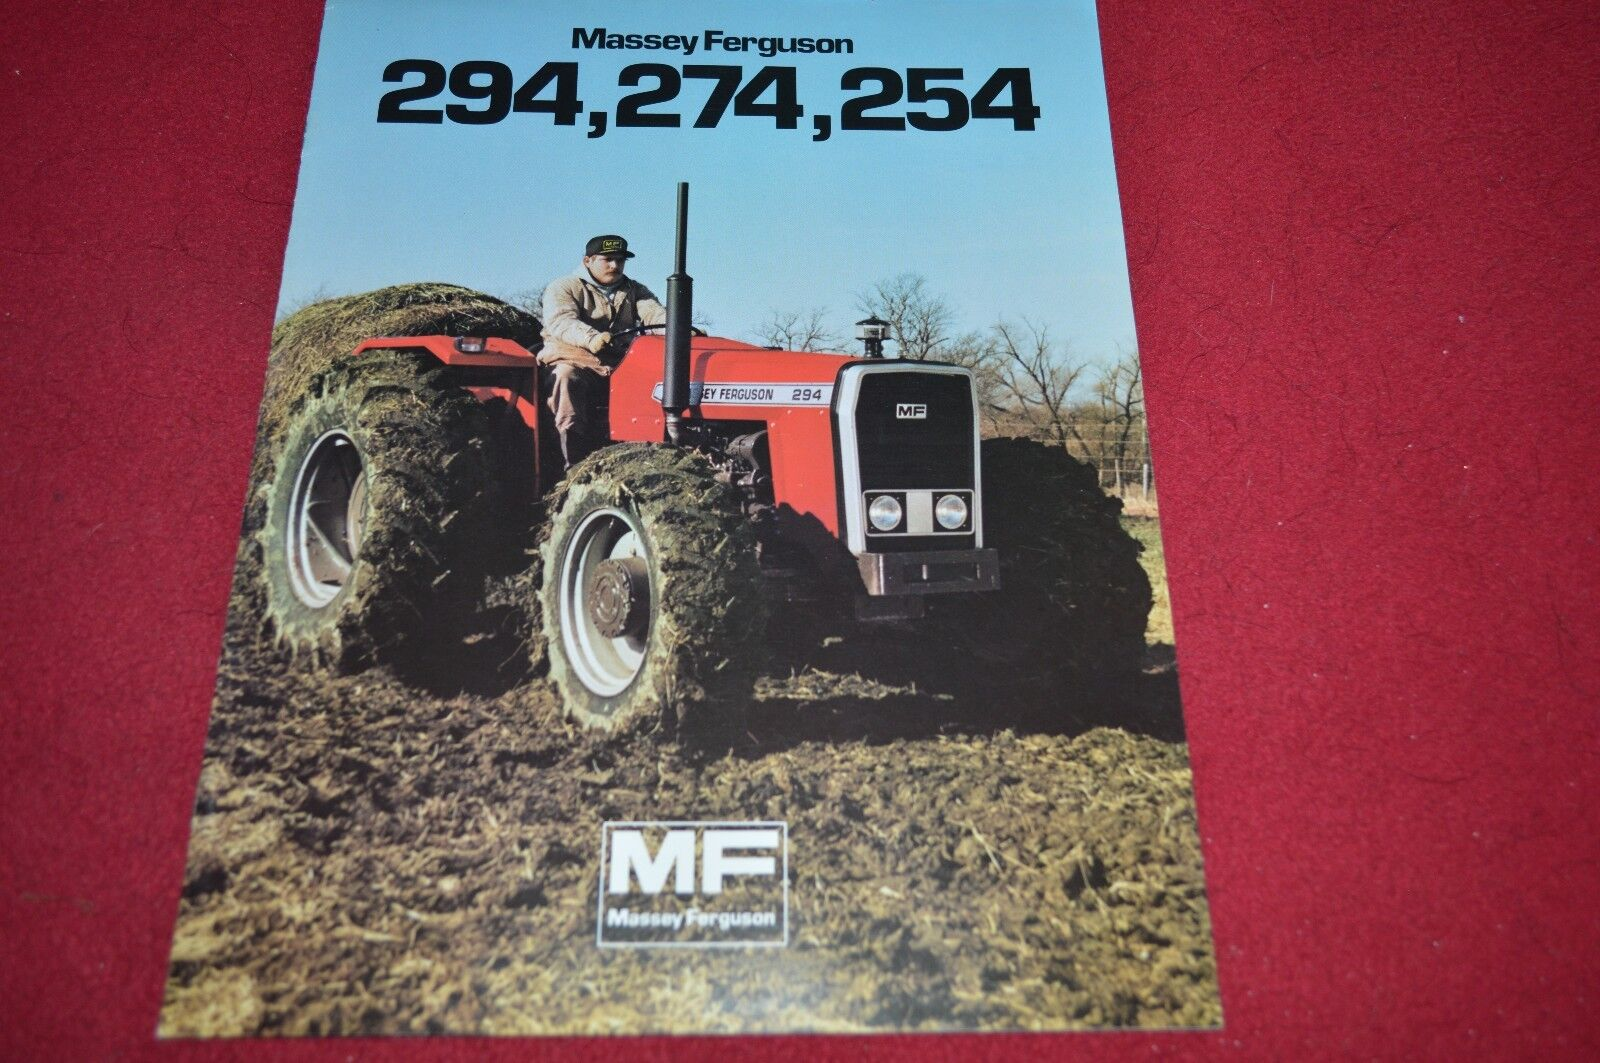 Massey Ferguson 294 274 254 Tractor Dealer's Brochure DCPA4 1 of 1Only 1  available ...